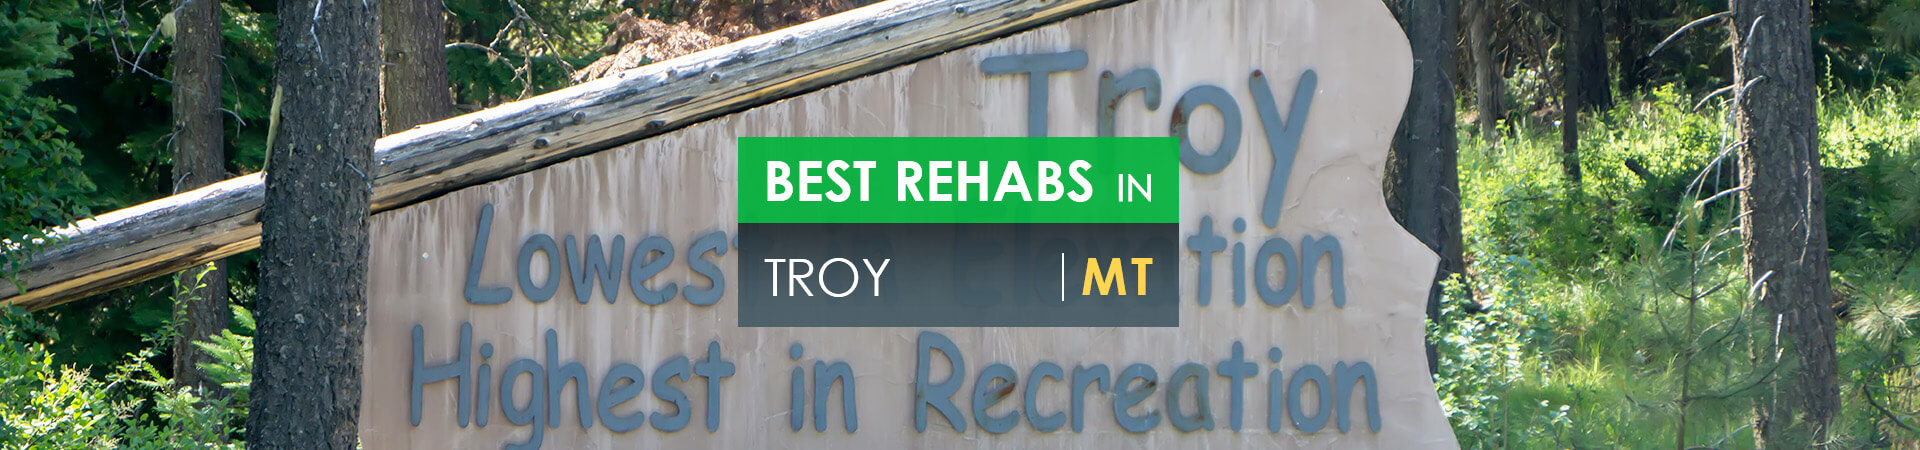 Best rehabs in Troy, MT